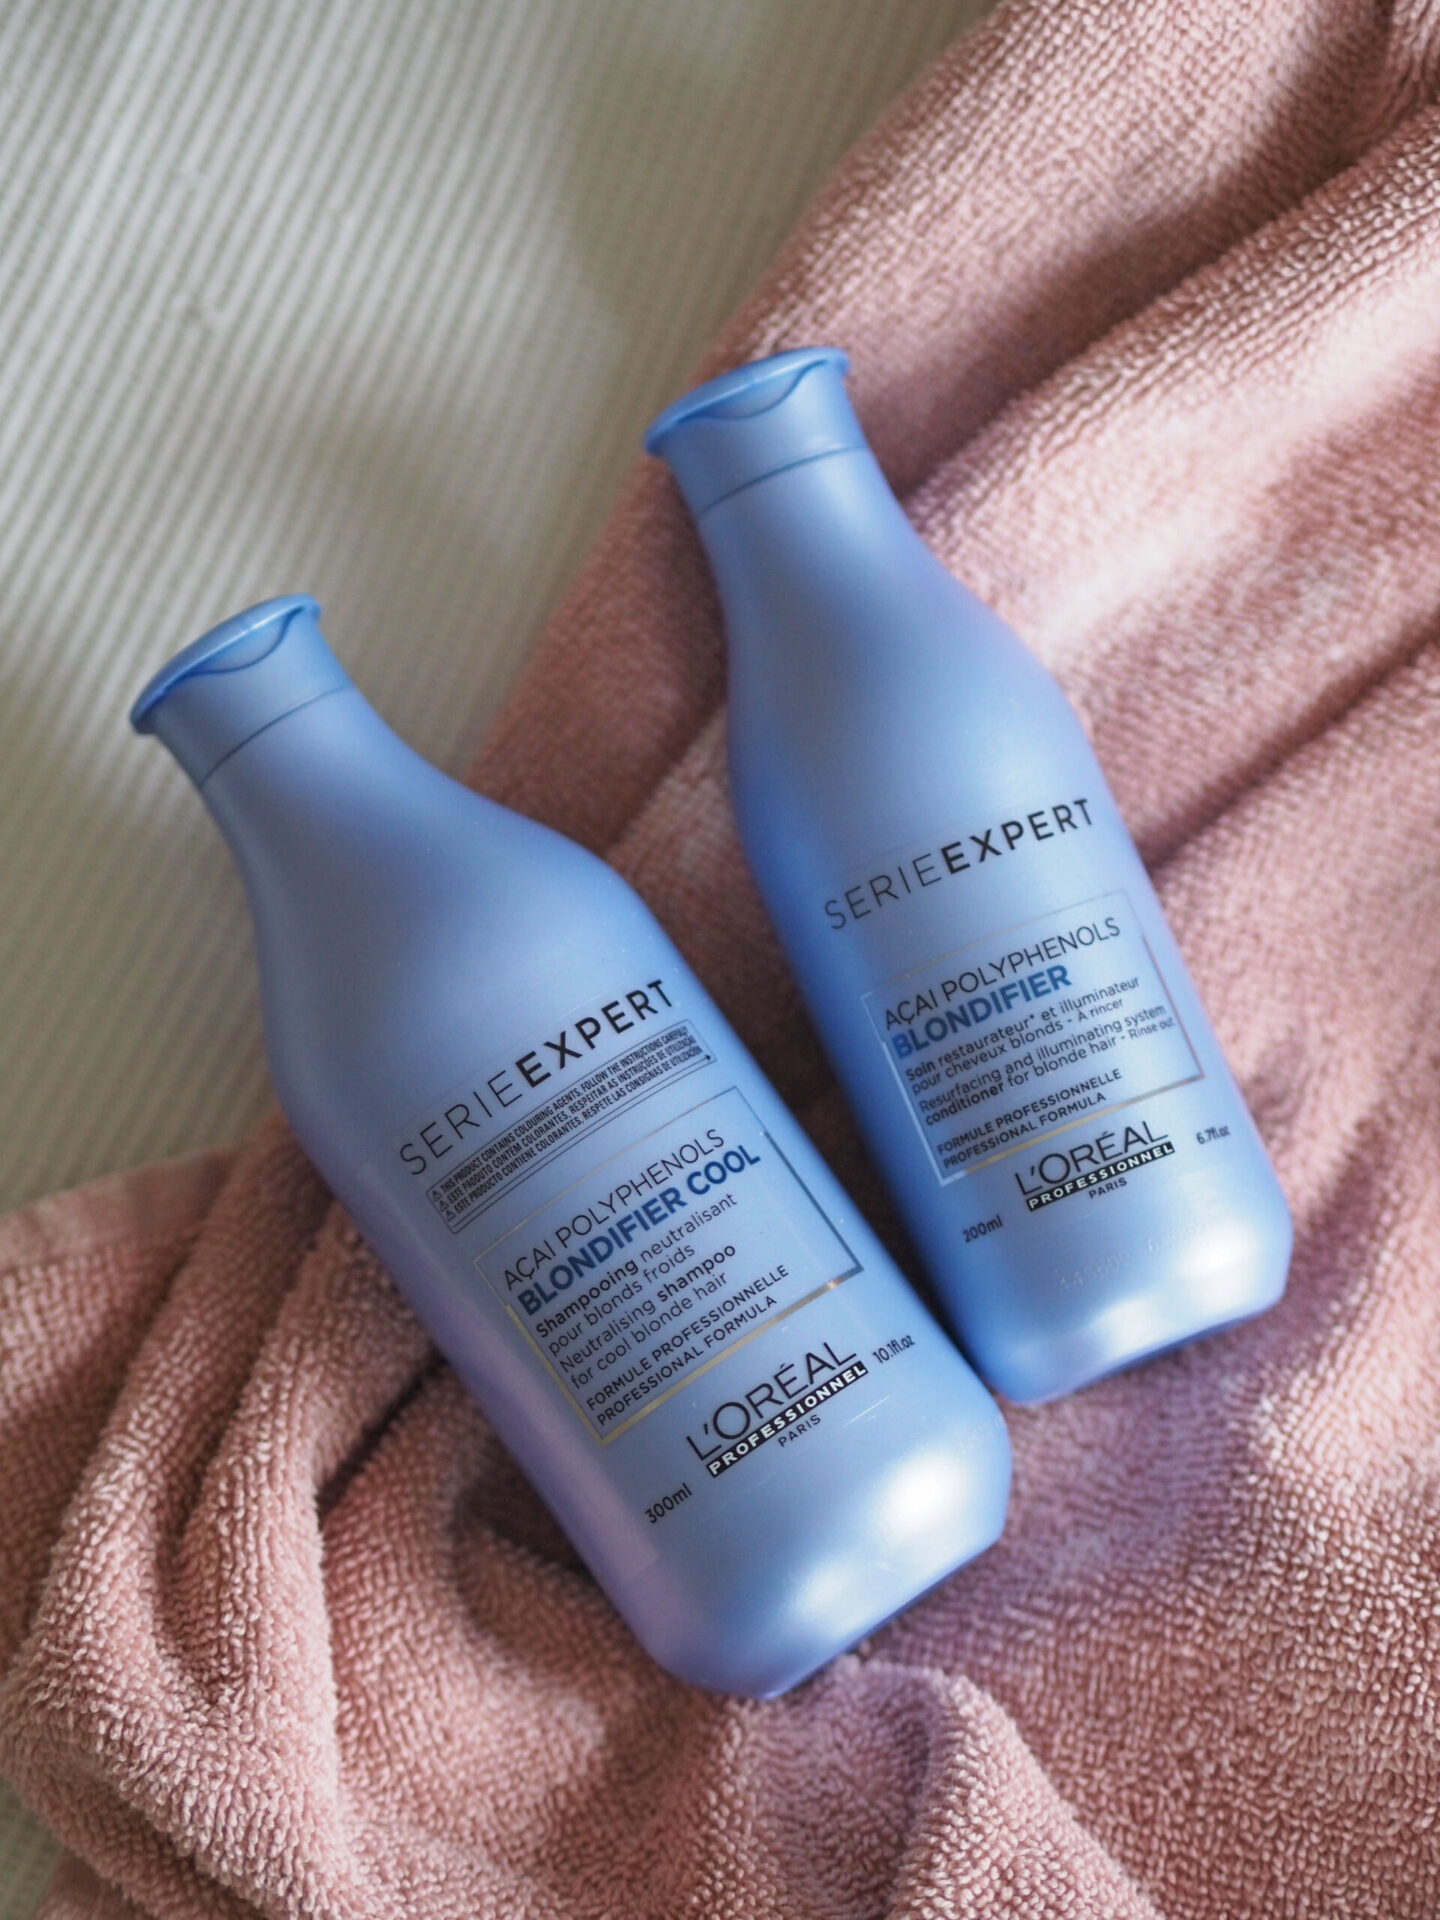 L'Oréal Professional Expert Serie haircare Blondifier range for bleached damaged hair